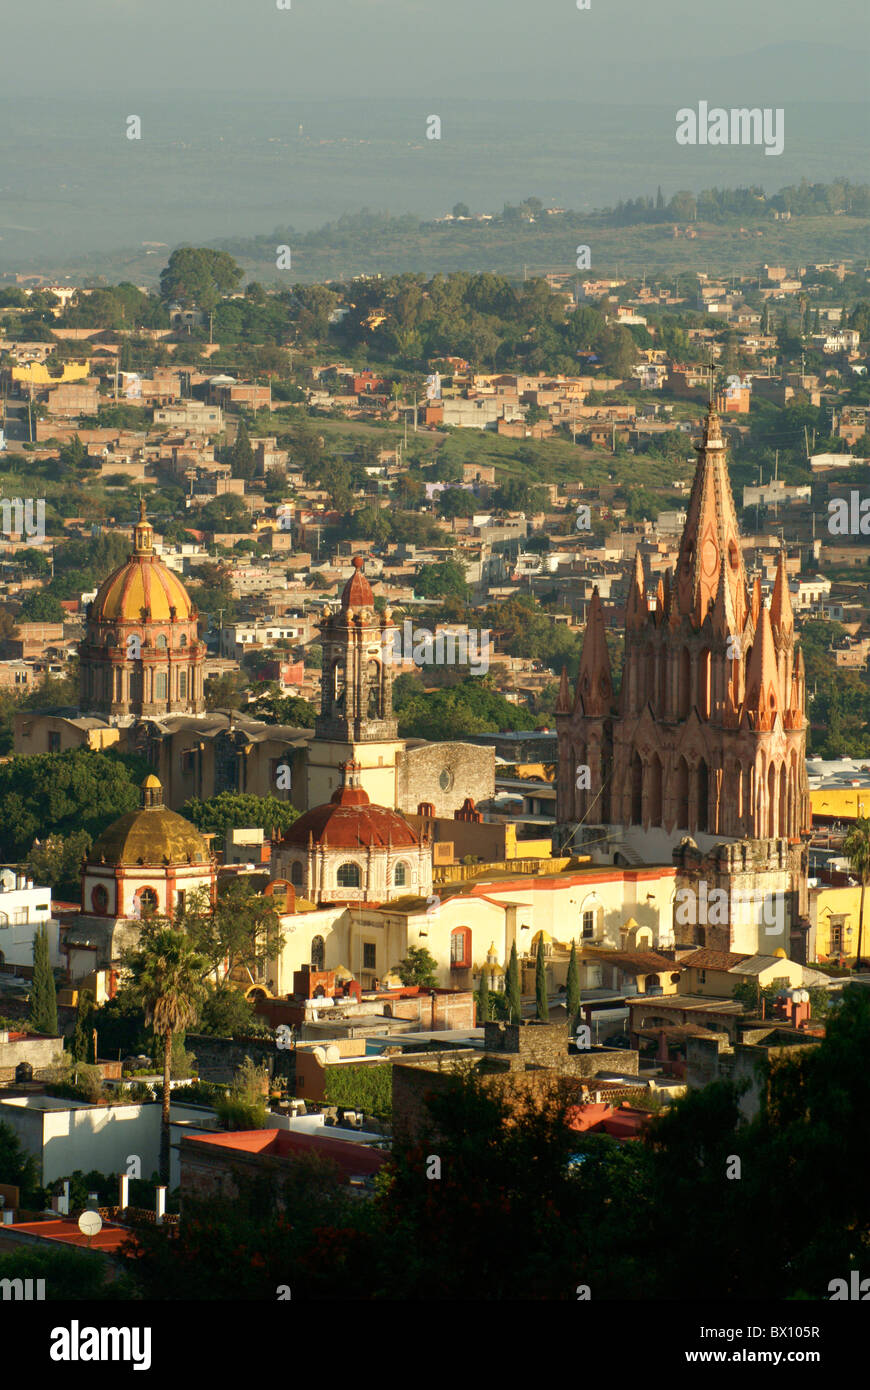 The historical center of San Miguel de Allende from above,  Guanajuato,, Mexico. - Stock Image